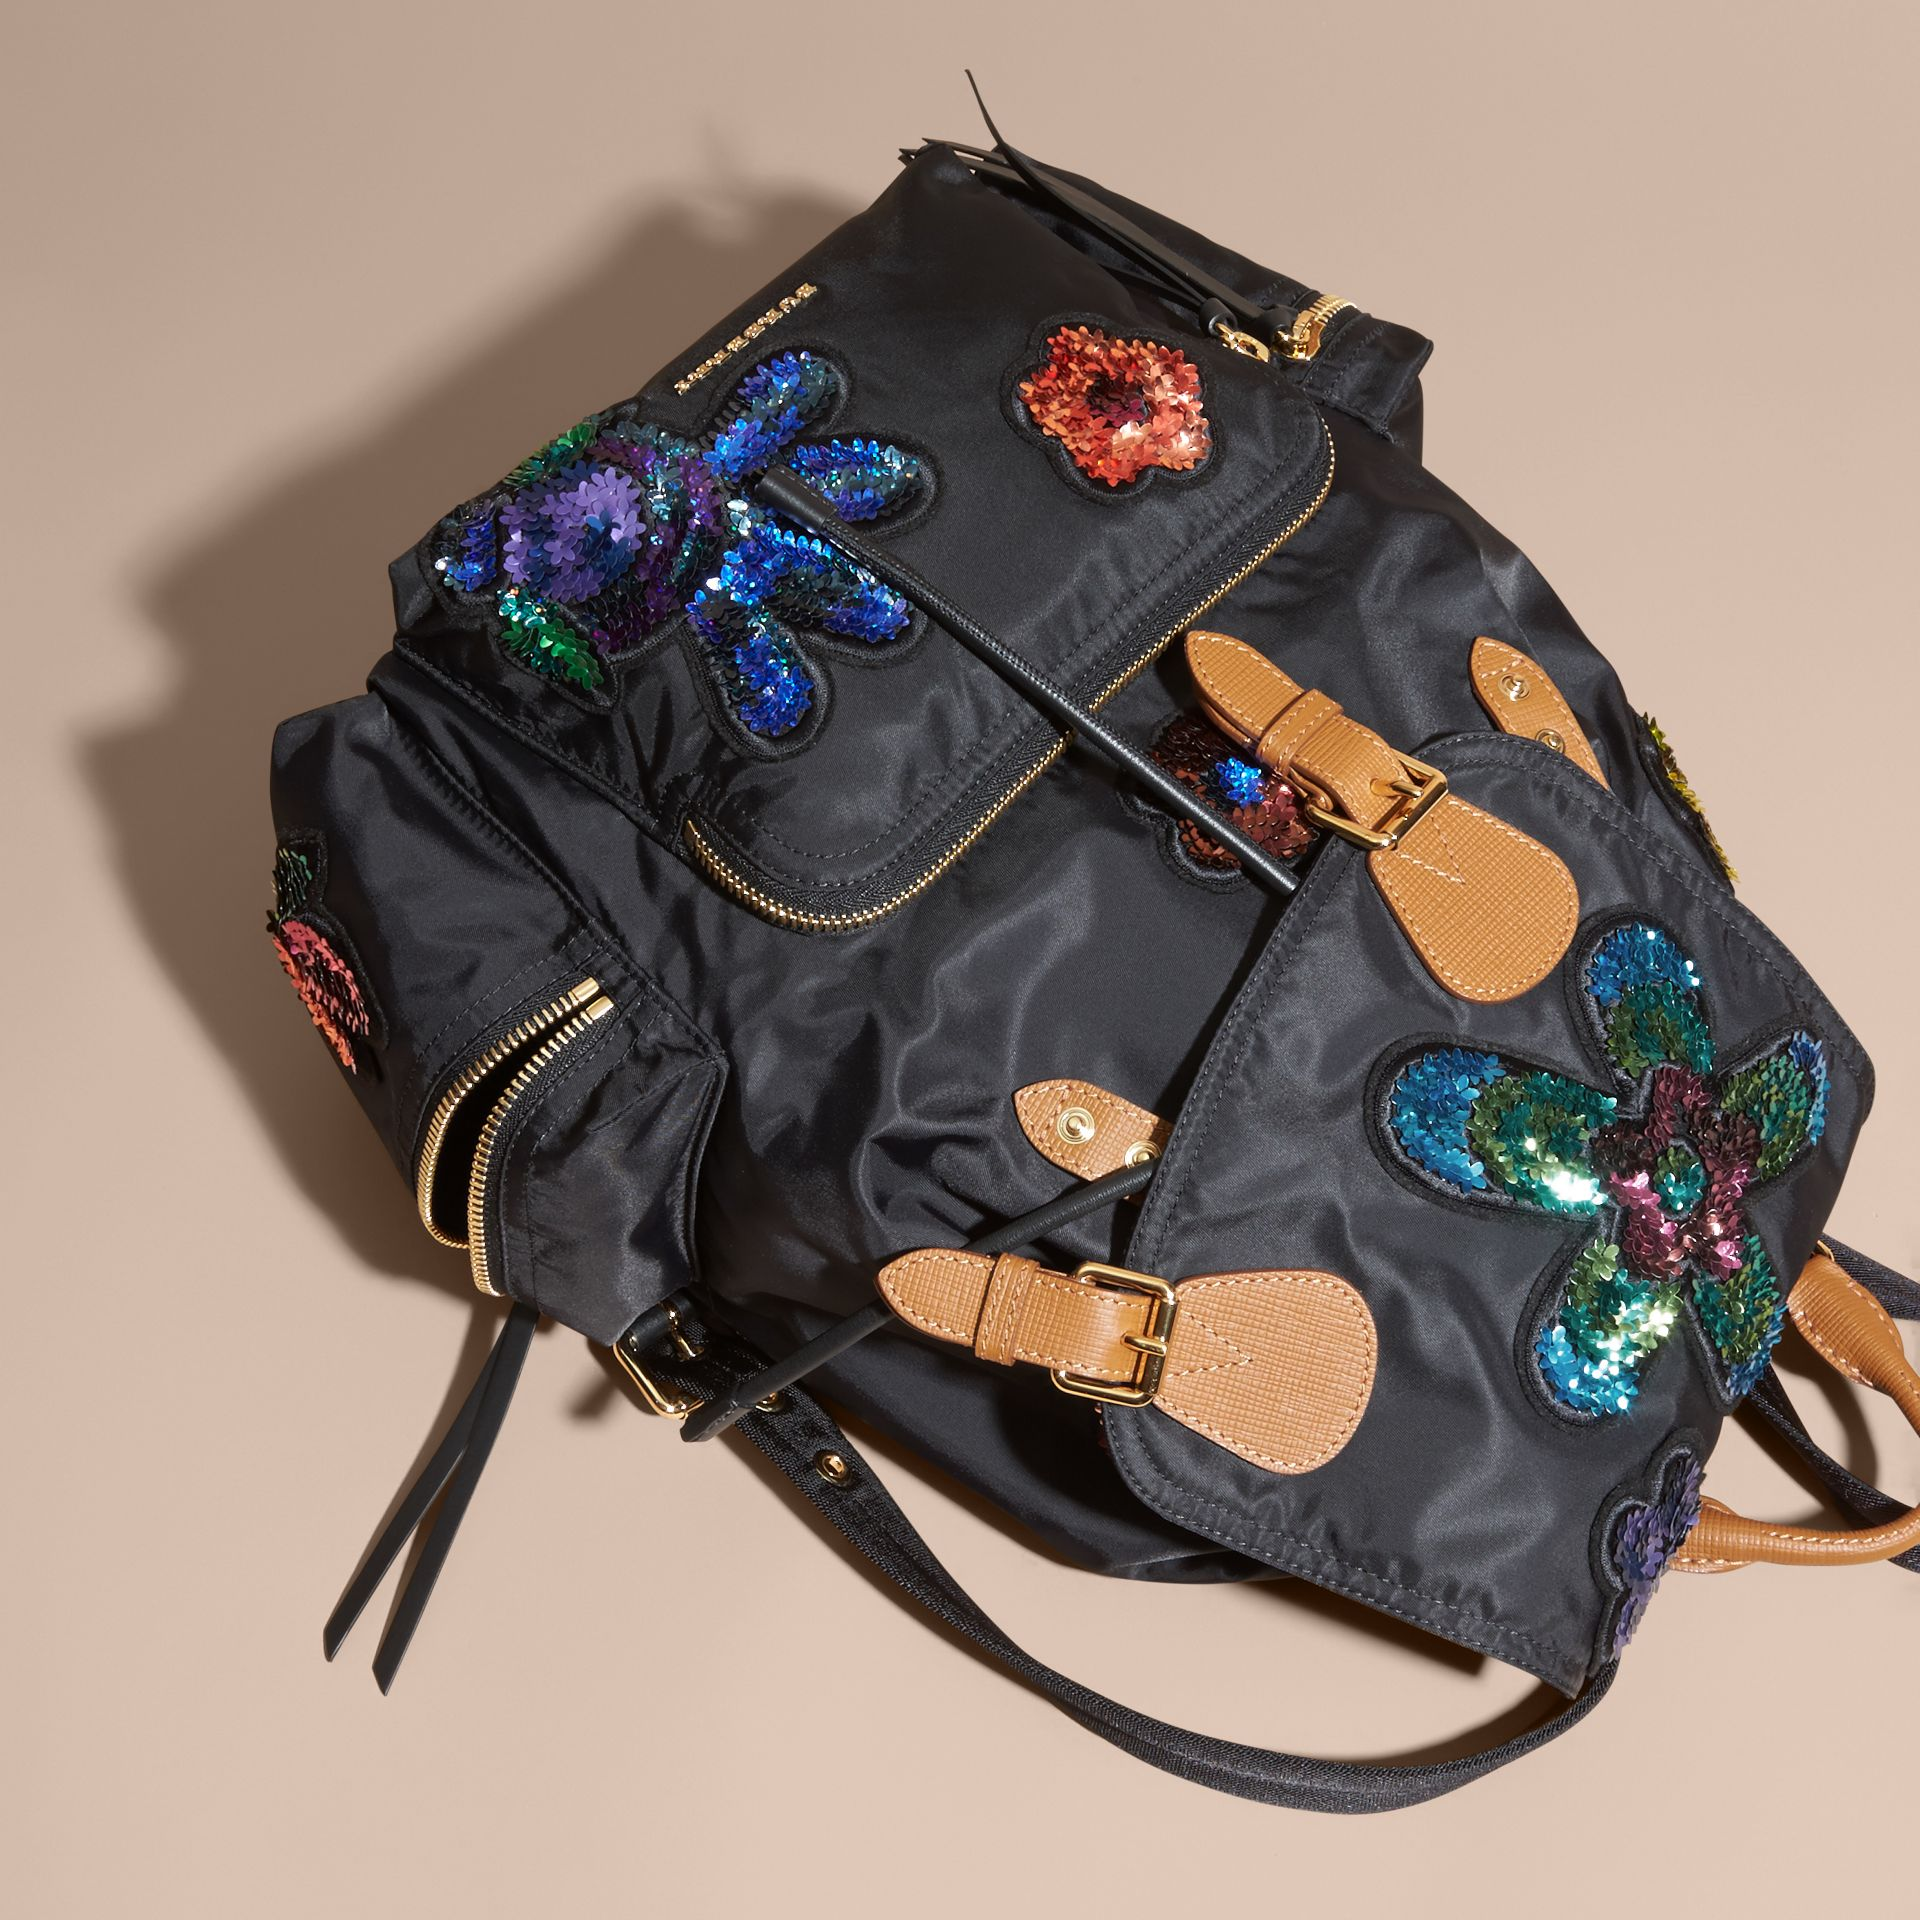 Noir Grand sac The Rucksack en nylon technique avec sequins à motif floral - photo de la galerie 7